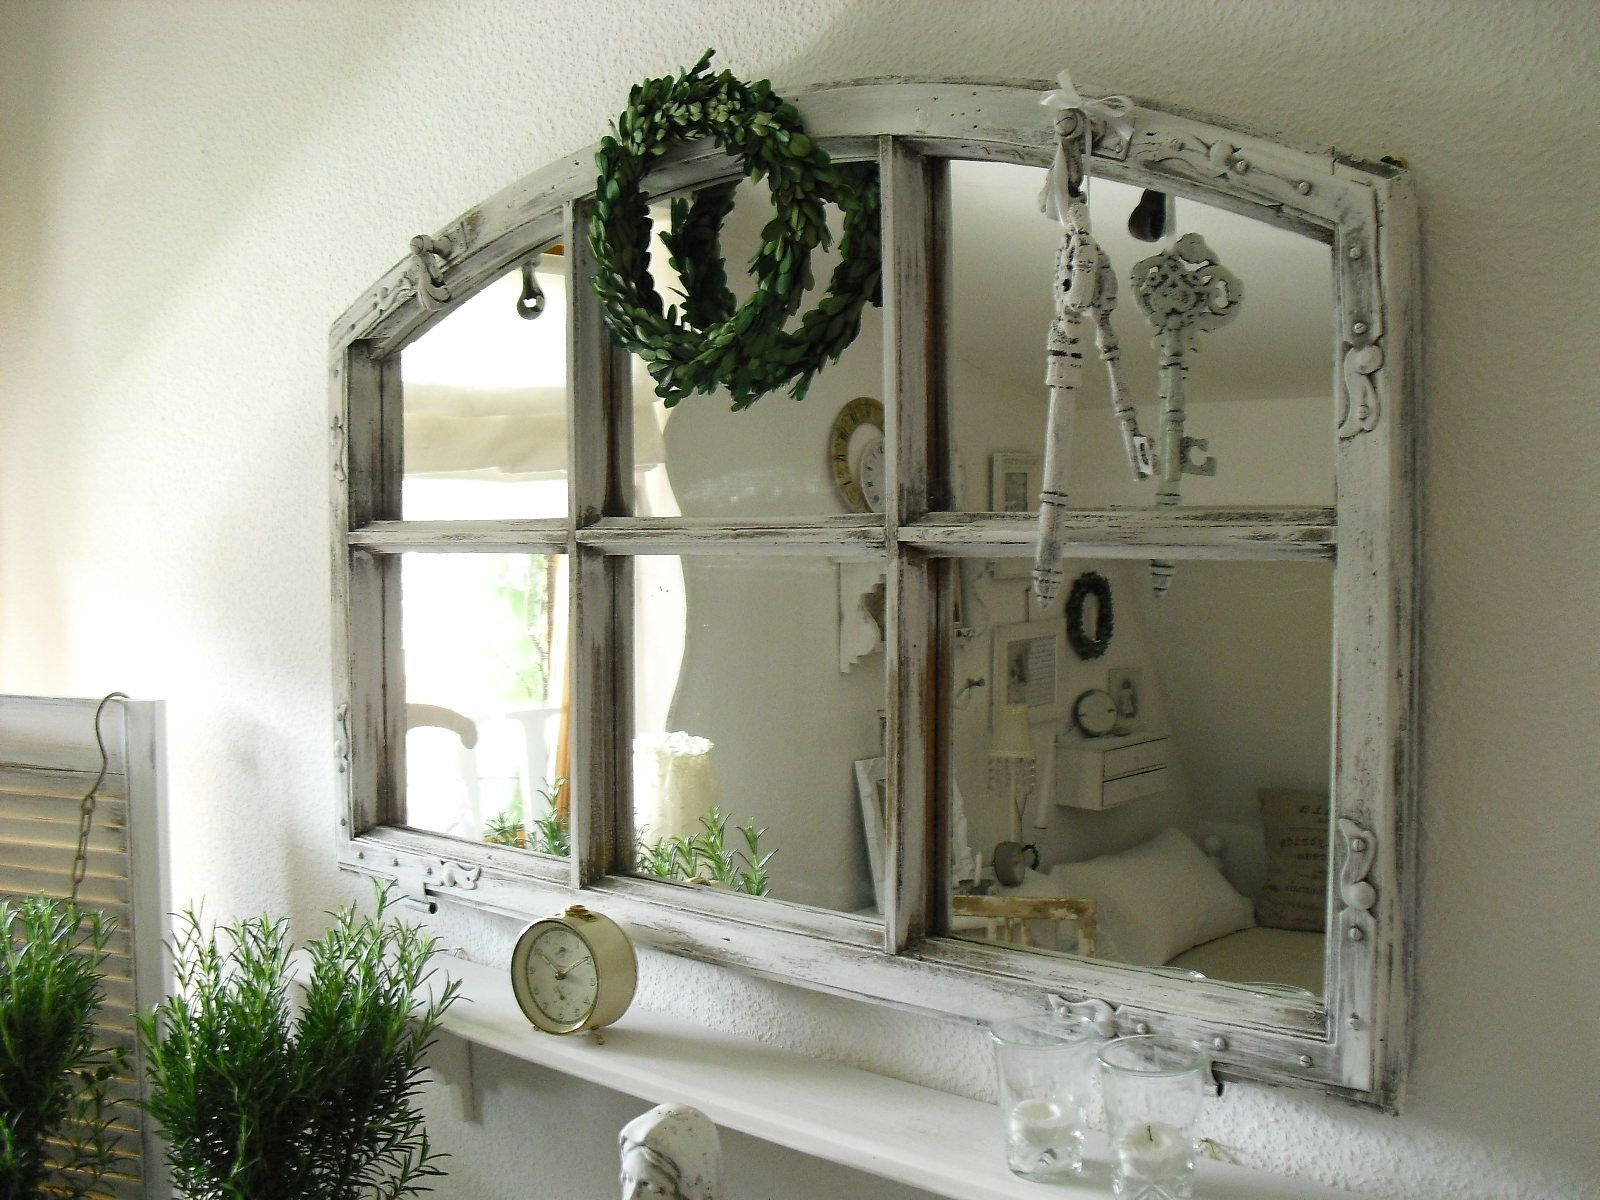 Charmant Living Room Wall Mirror Whitewashed Chippy Shabby Chic French Country  Rustic Swedish Decor Idea. *